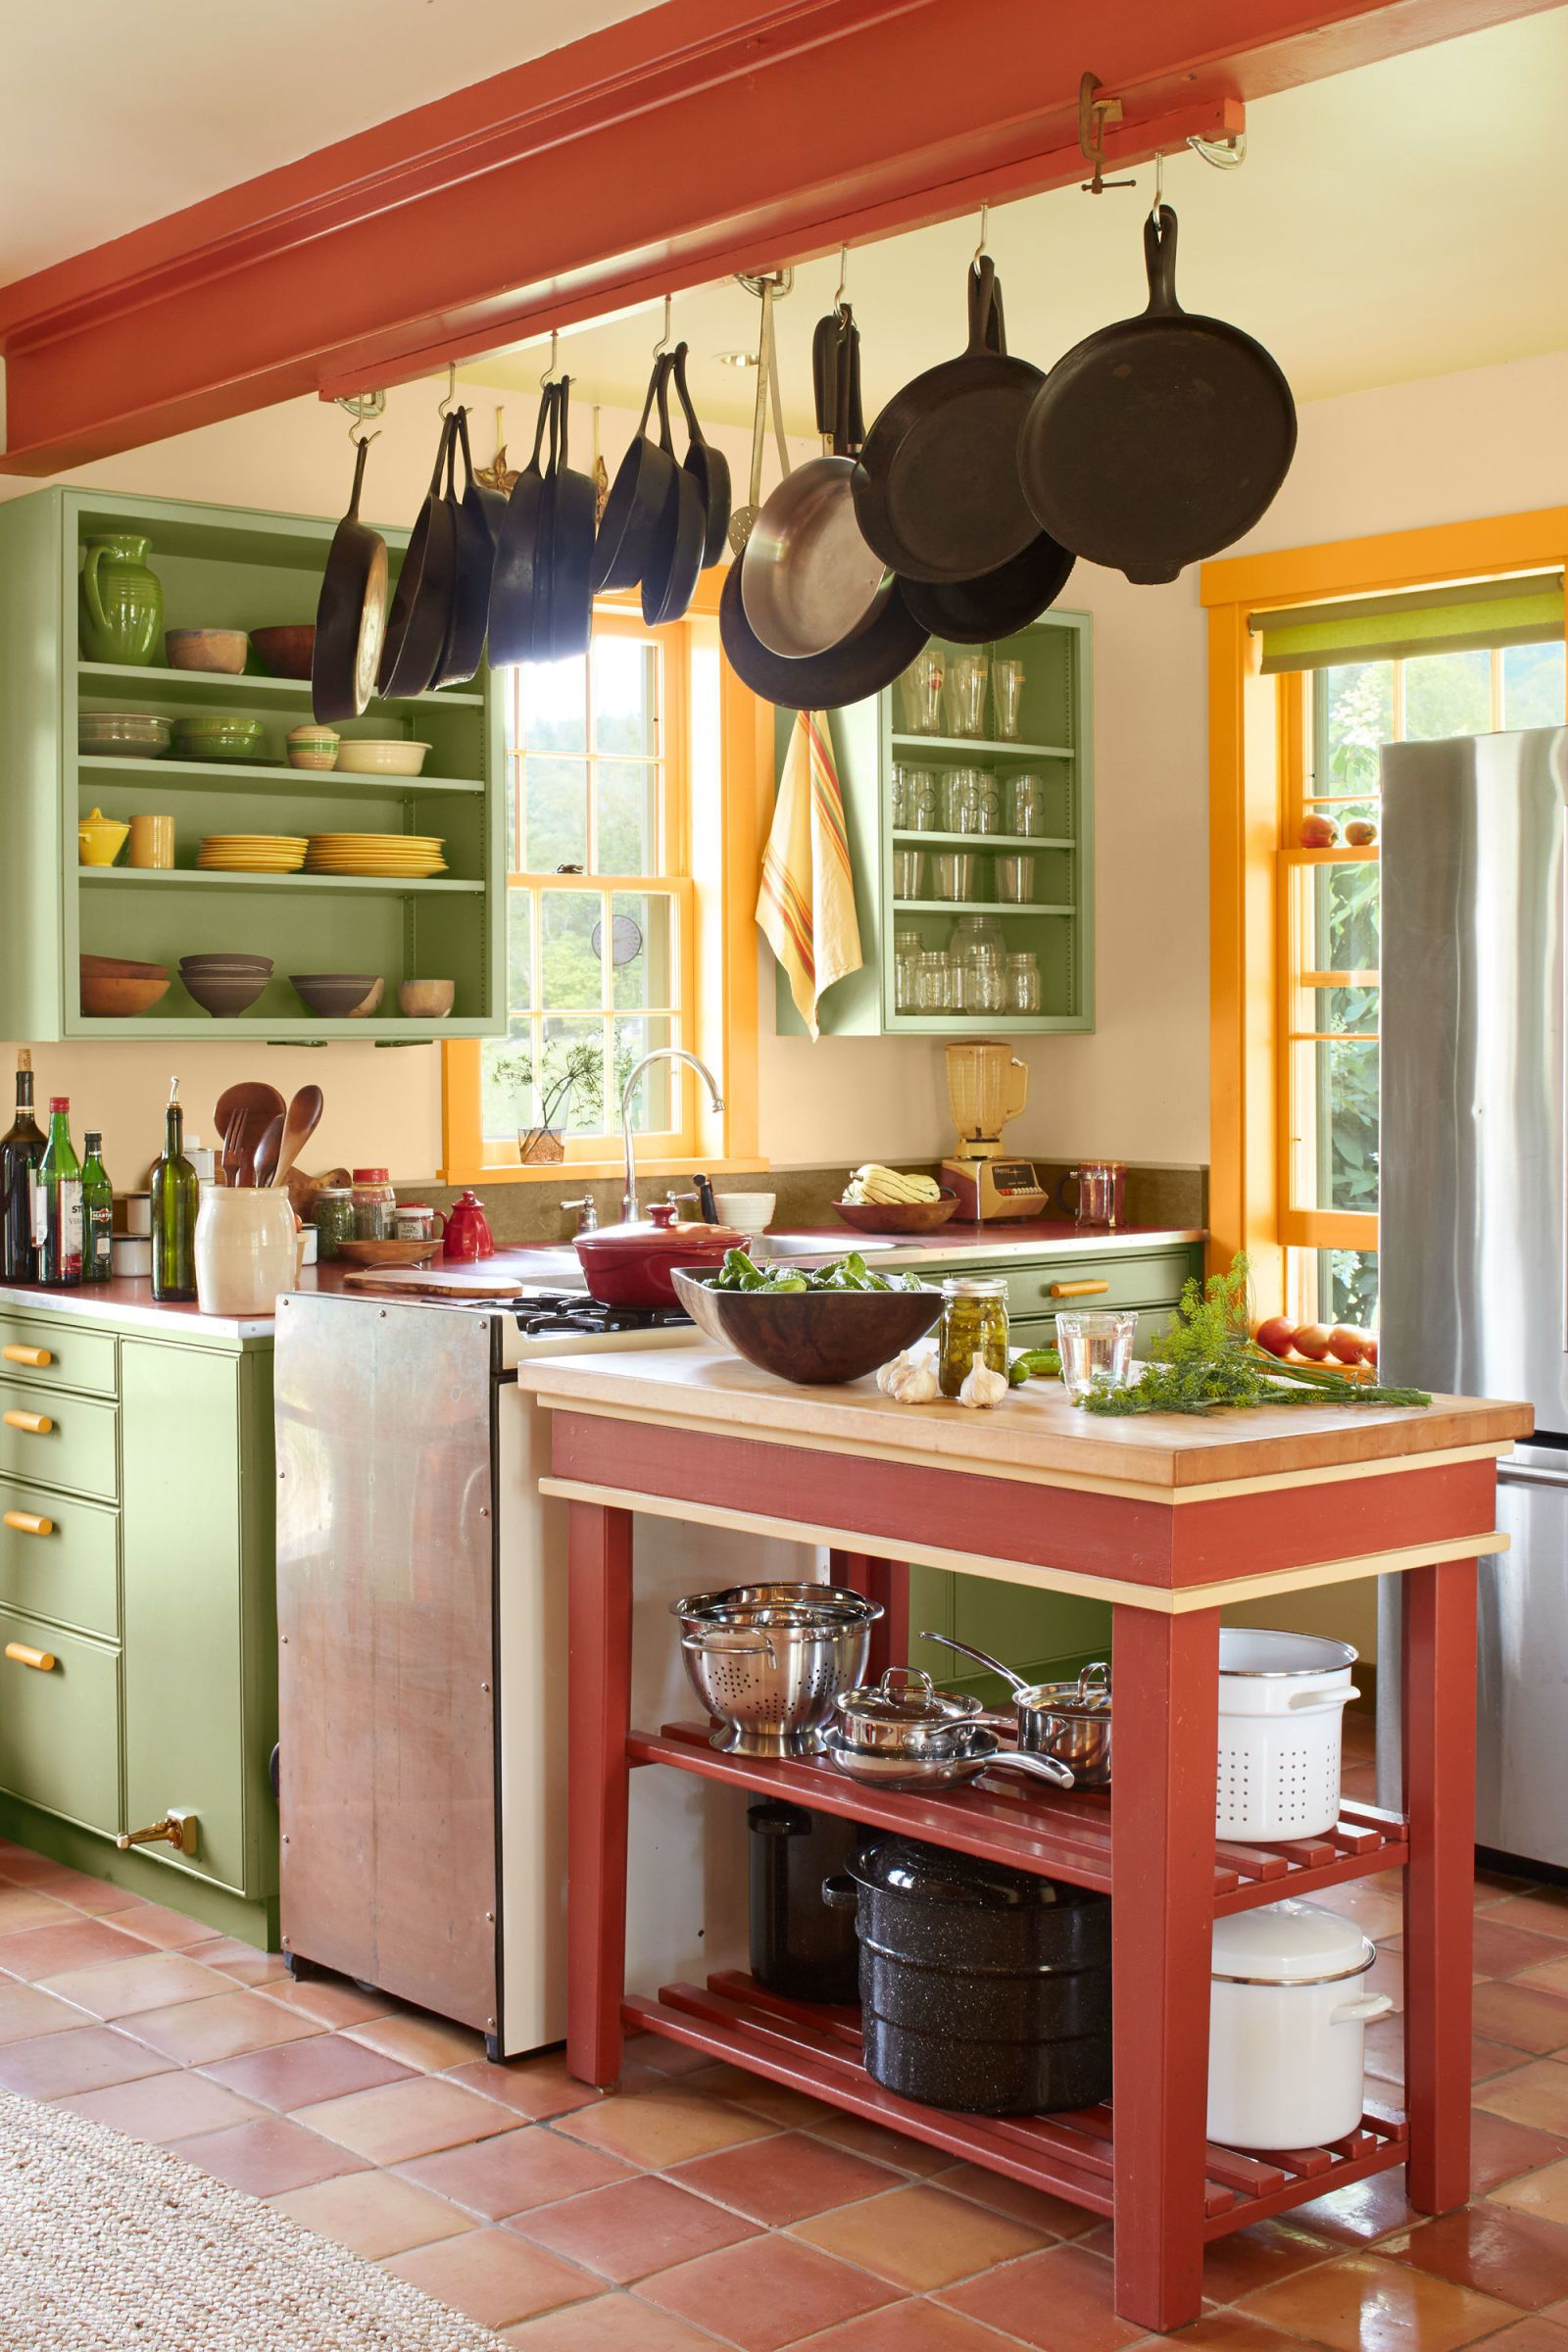 15 Ways To Add Color Your Kitchen